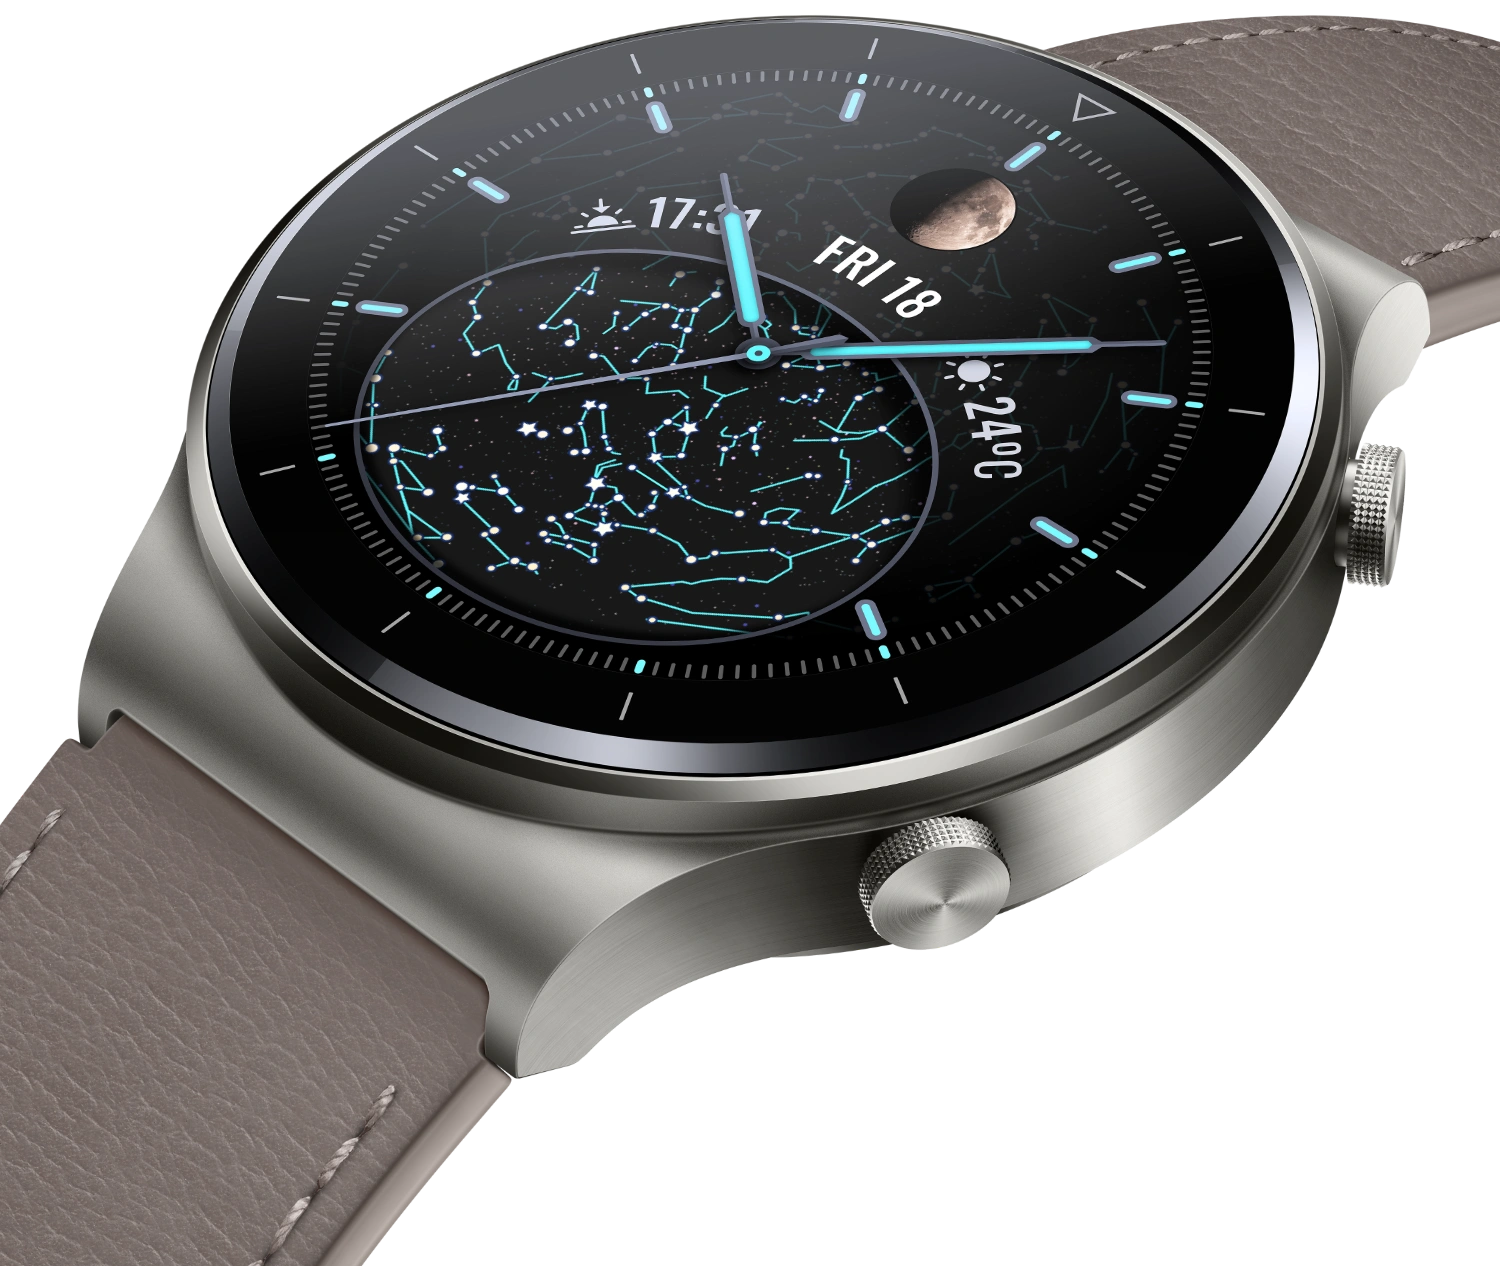 Huawei watch gt2 pro now accessible at Huawei shop South Africa